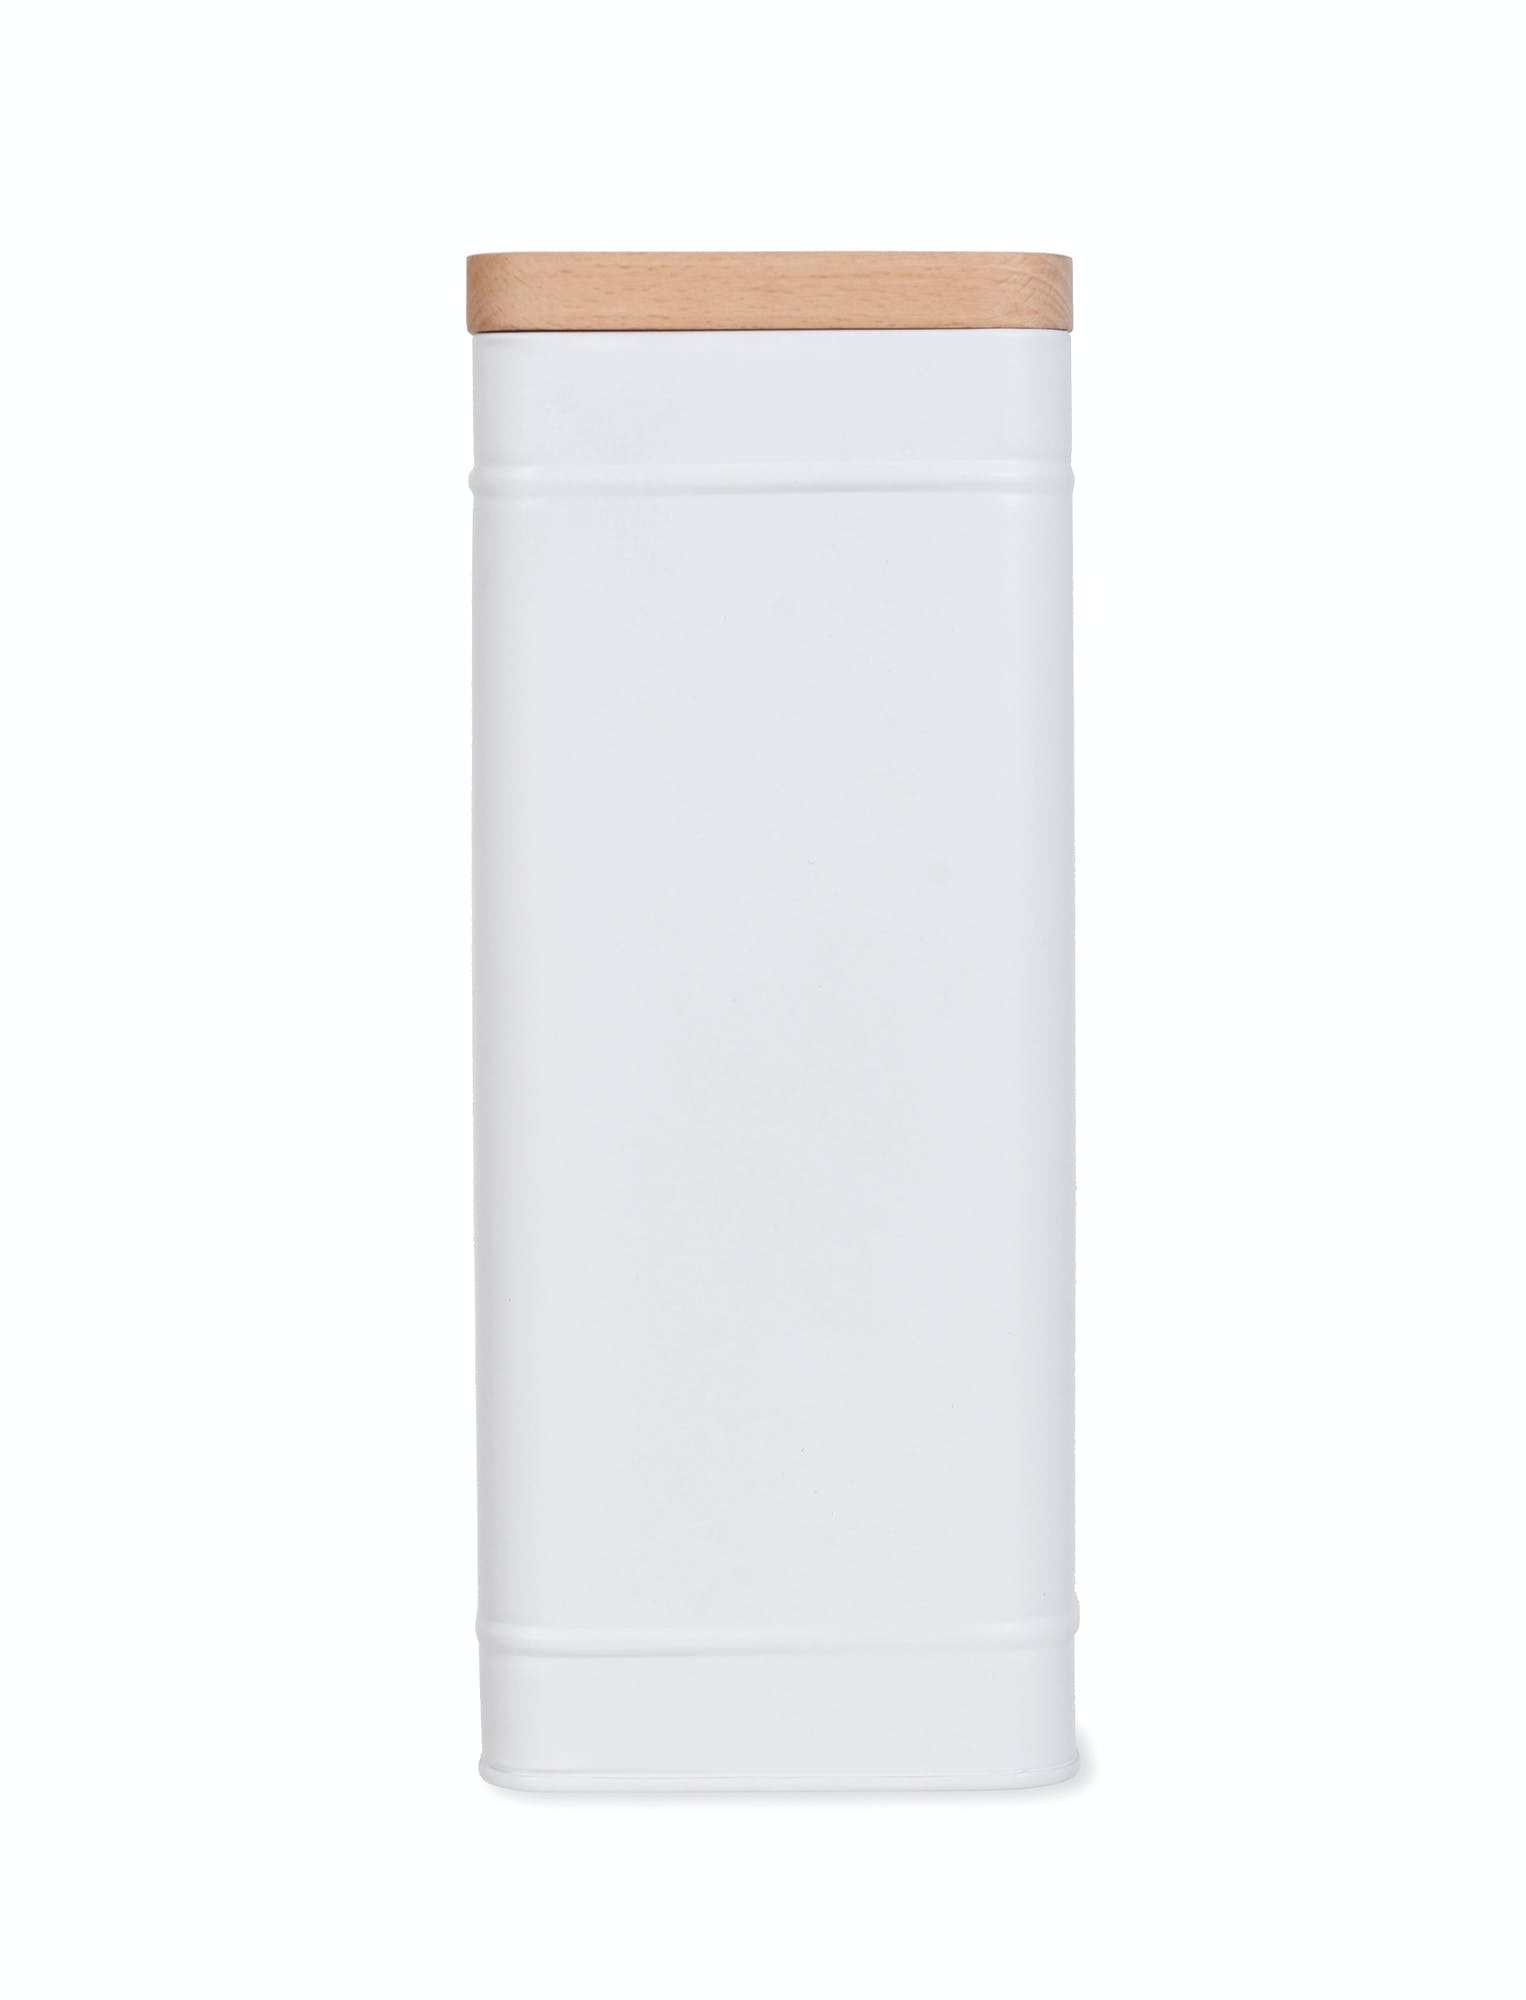 Garden Trading Bororough Canister, Tall - Lily White